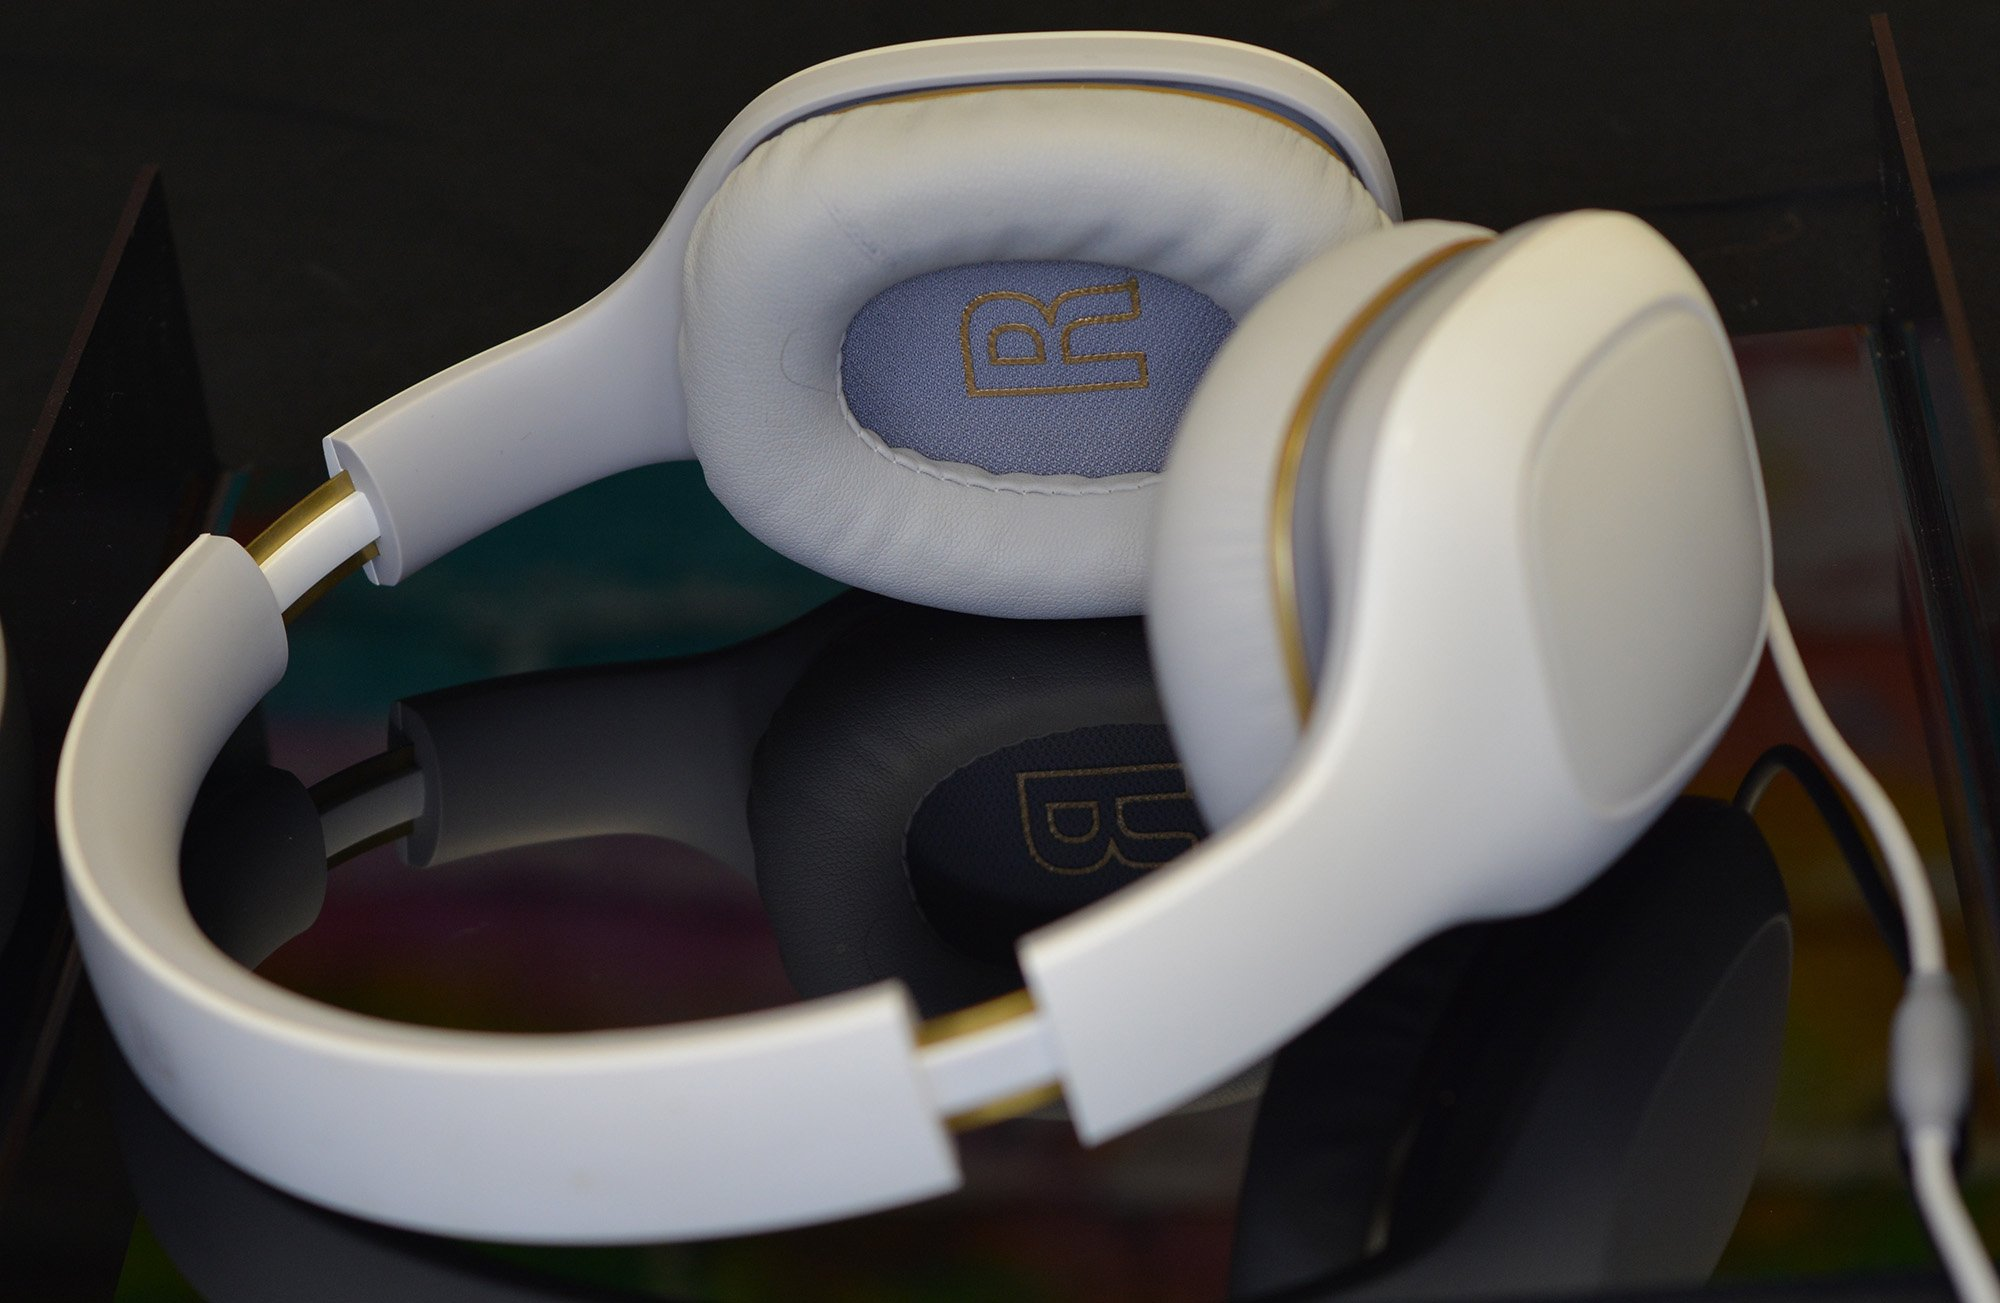 Xiaomi Mi Headphones 30 That Competes With The Big Boys Original Sport Bluetooth Wireless Headset Earphone Headphone Dont Squeeze My Head At All Which Is Nice For Comfort But Can Make Them Come Off When Whipping Around To Talk Someone Standing